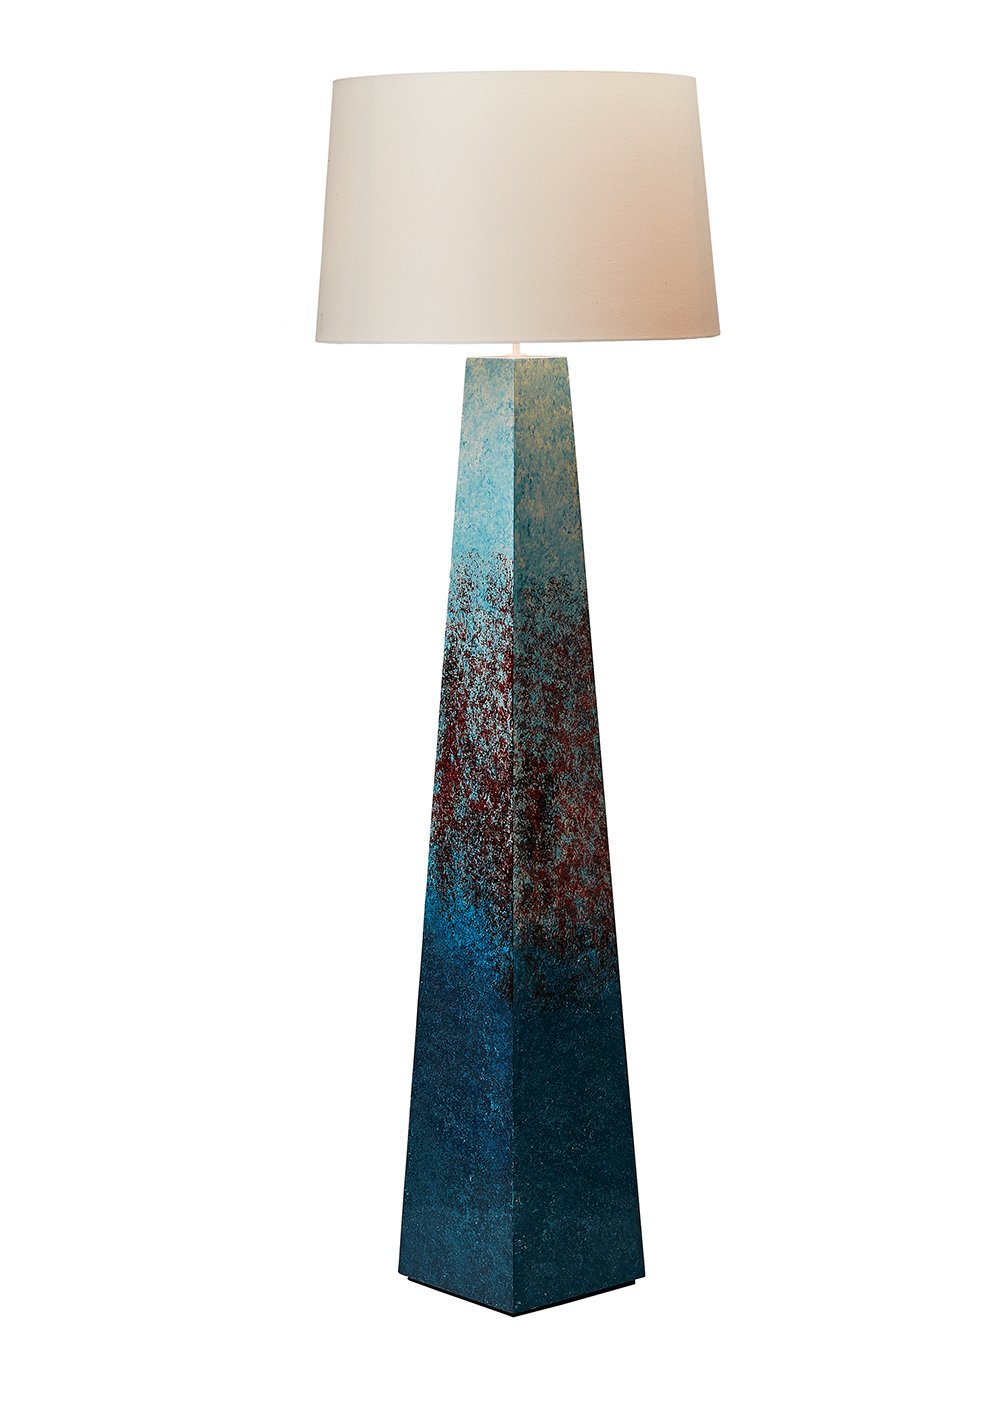 O'THENTIQUE Large Handpainted Beach Floor Lamp | Red Blue Color Modern Nautical House Ocean Style for Contemporary Coastal Living Room, Bedroom, Kids Room, Office, Library